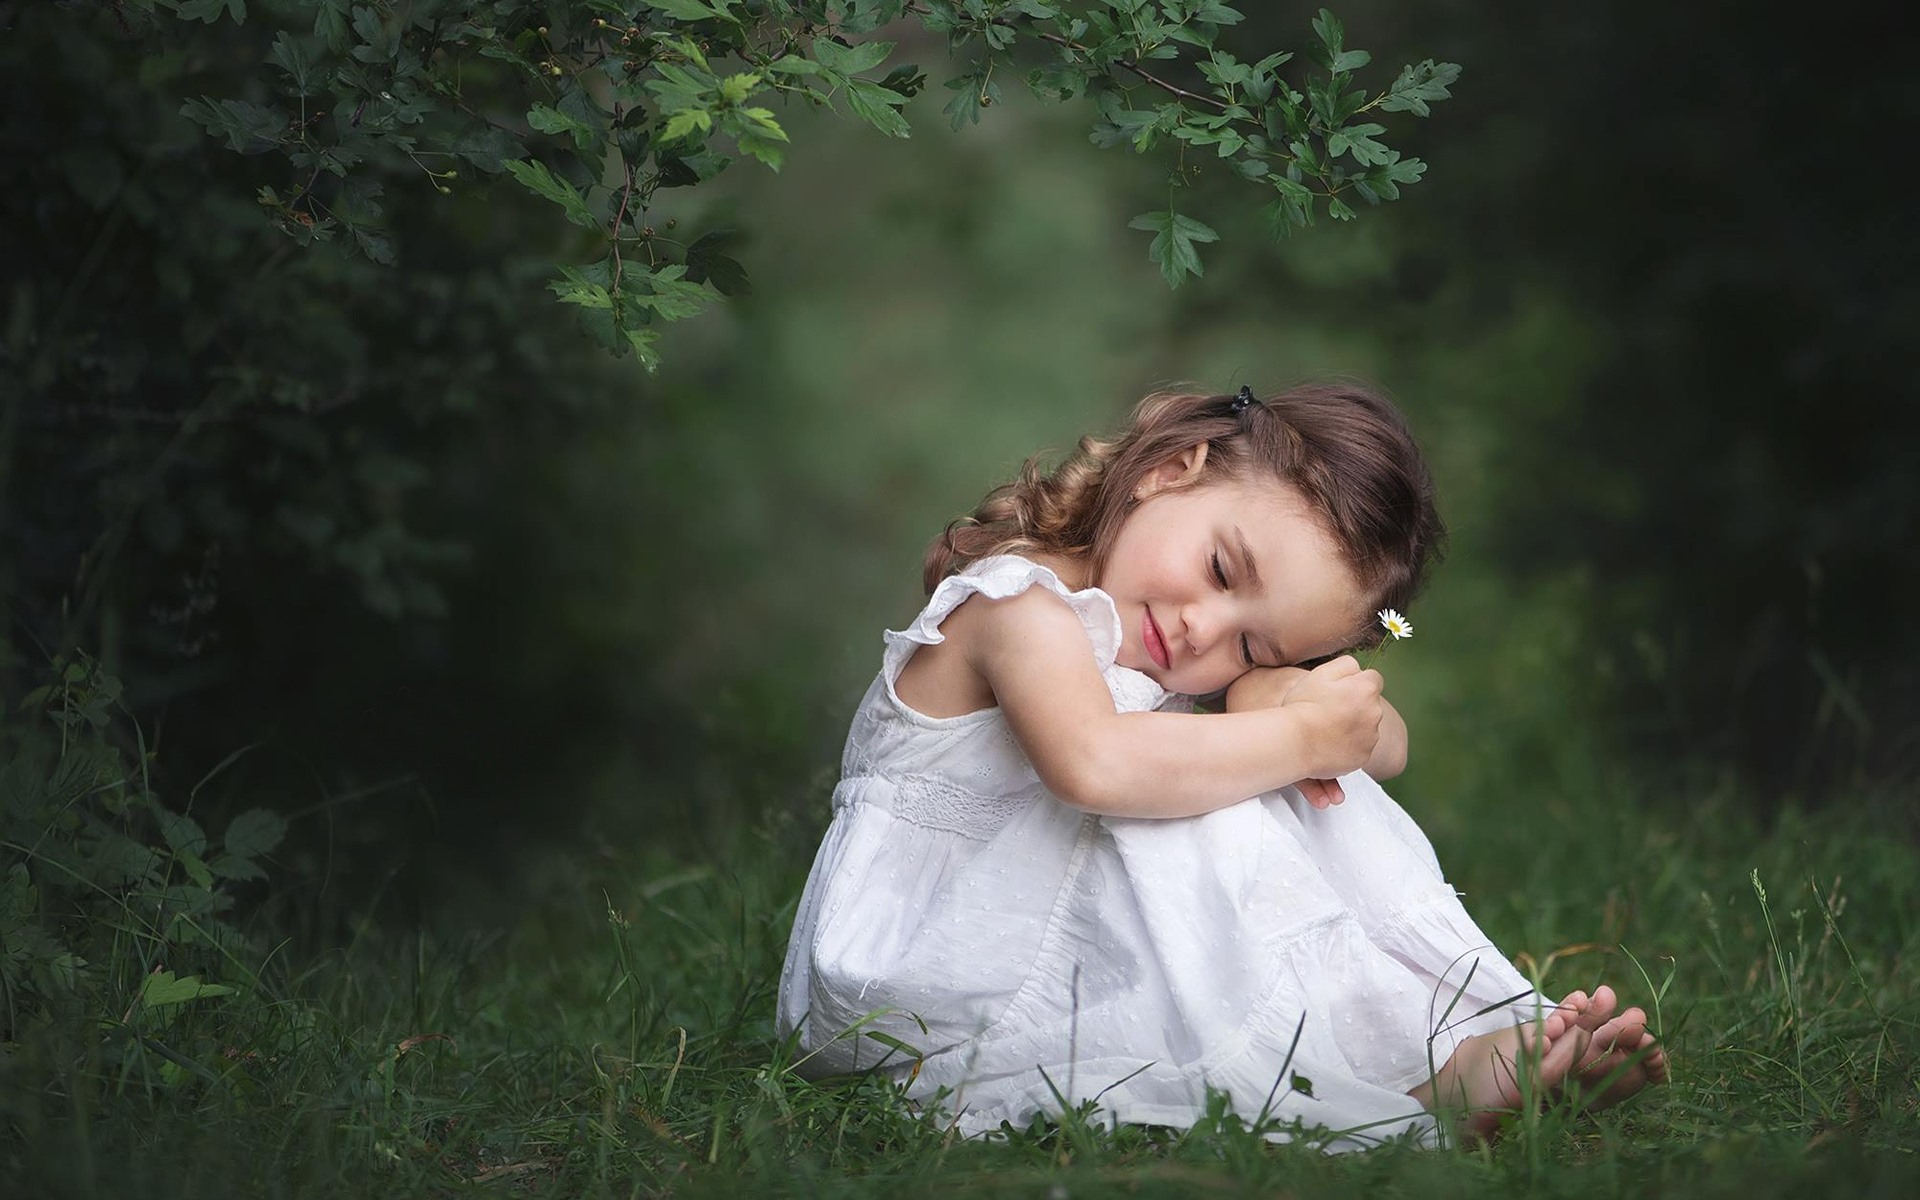 Wallpaper Cute Little Girl Sit On Ground White Skirt Nature 1920x1200 Hd Picture Image